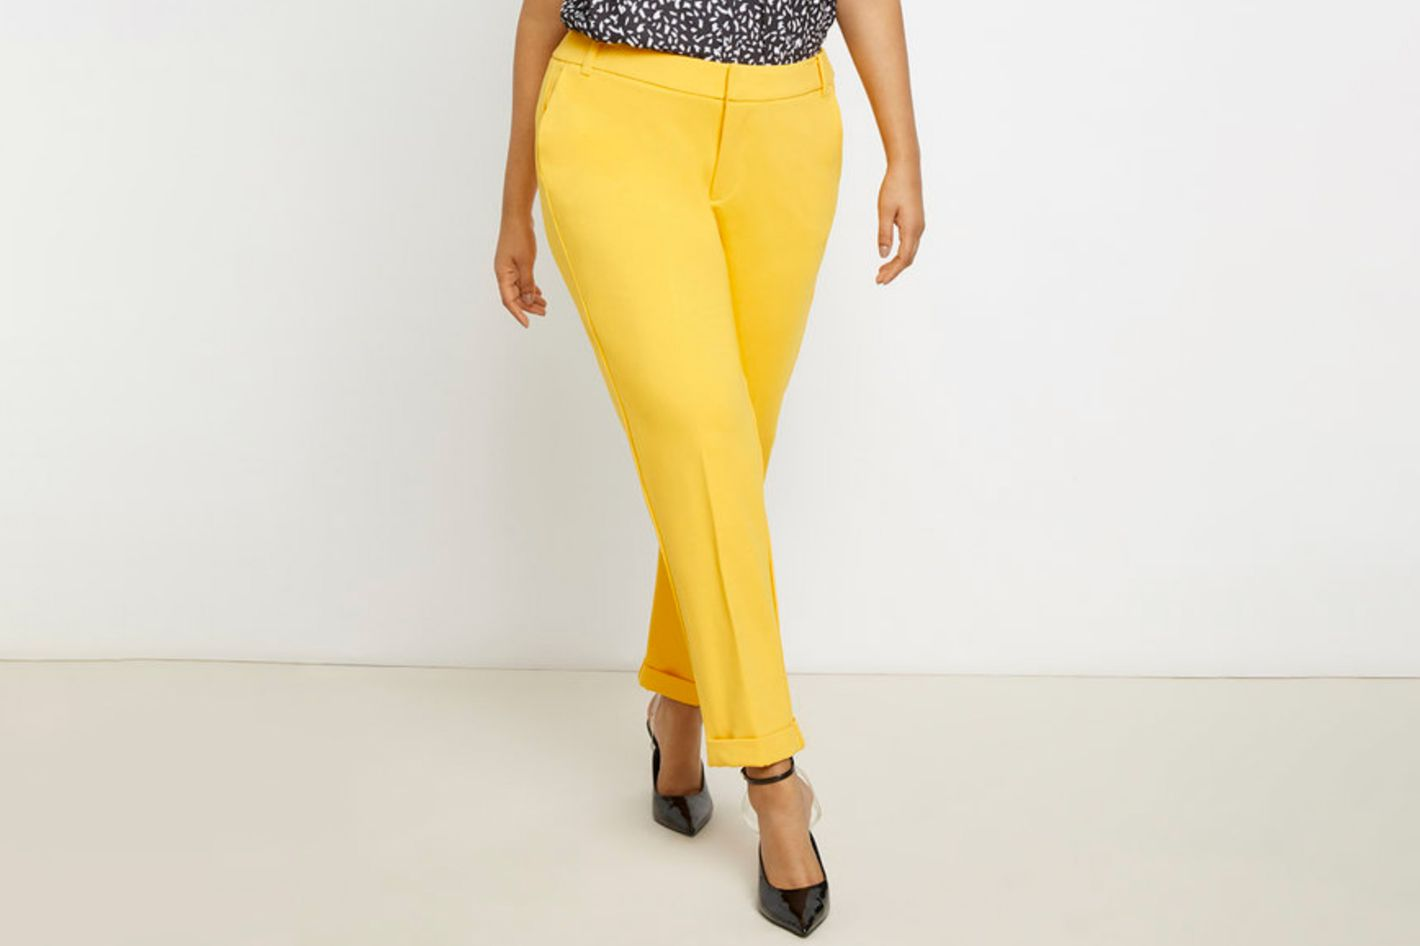 Eloquii 9-to-5 Ankle Cuff Work Pant